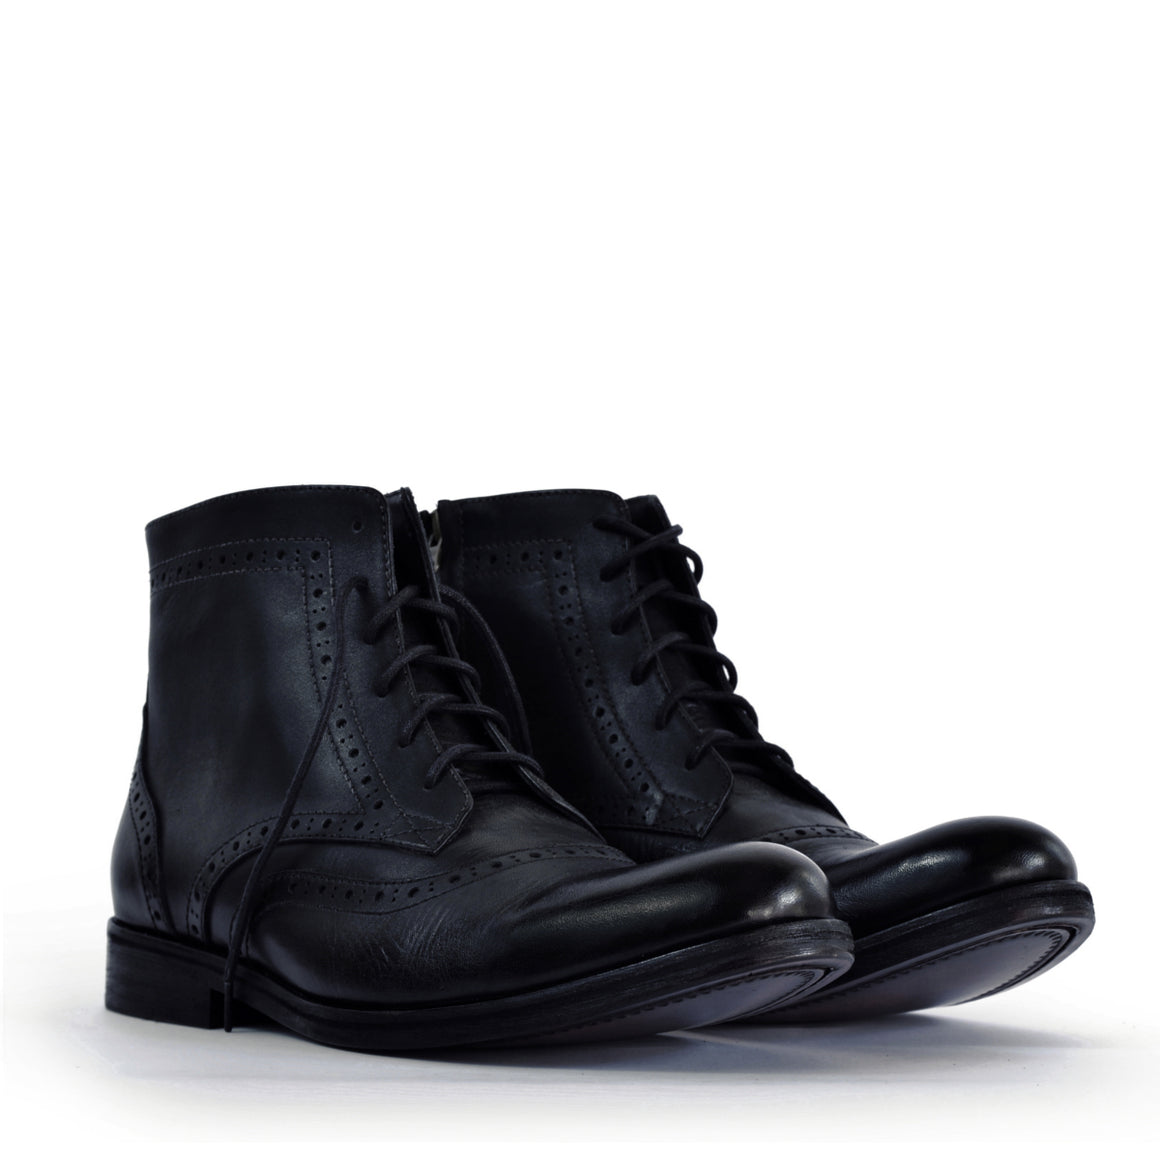 Urbano Groom - leather boots